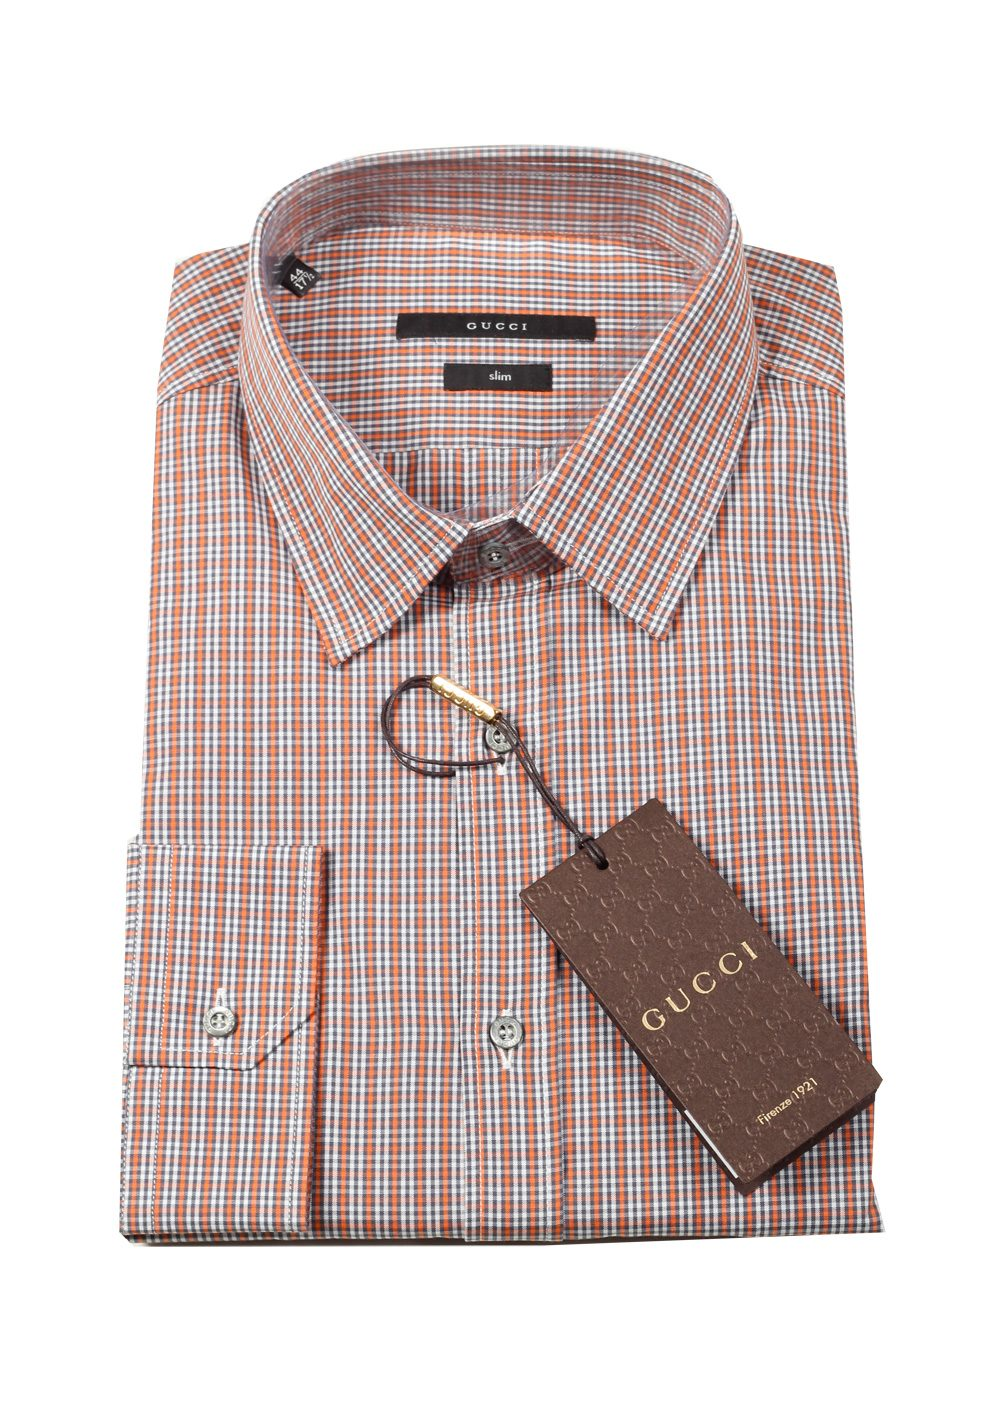 Gucci checked orange dress shirt size 40 15 75 u s slim for Size 15 dress shirt